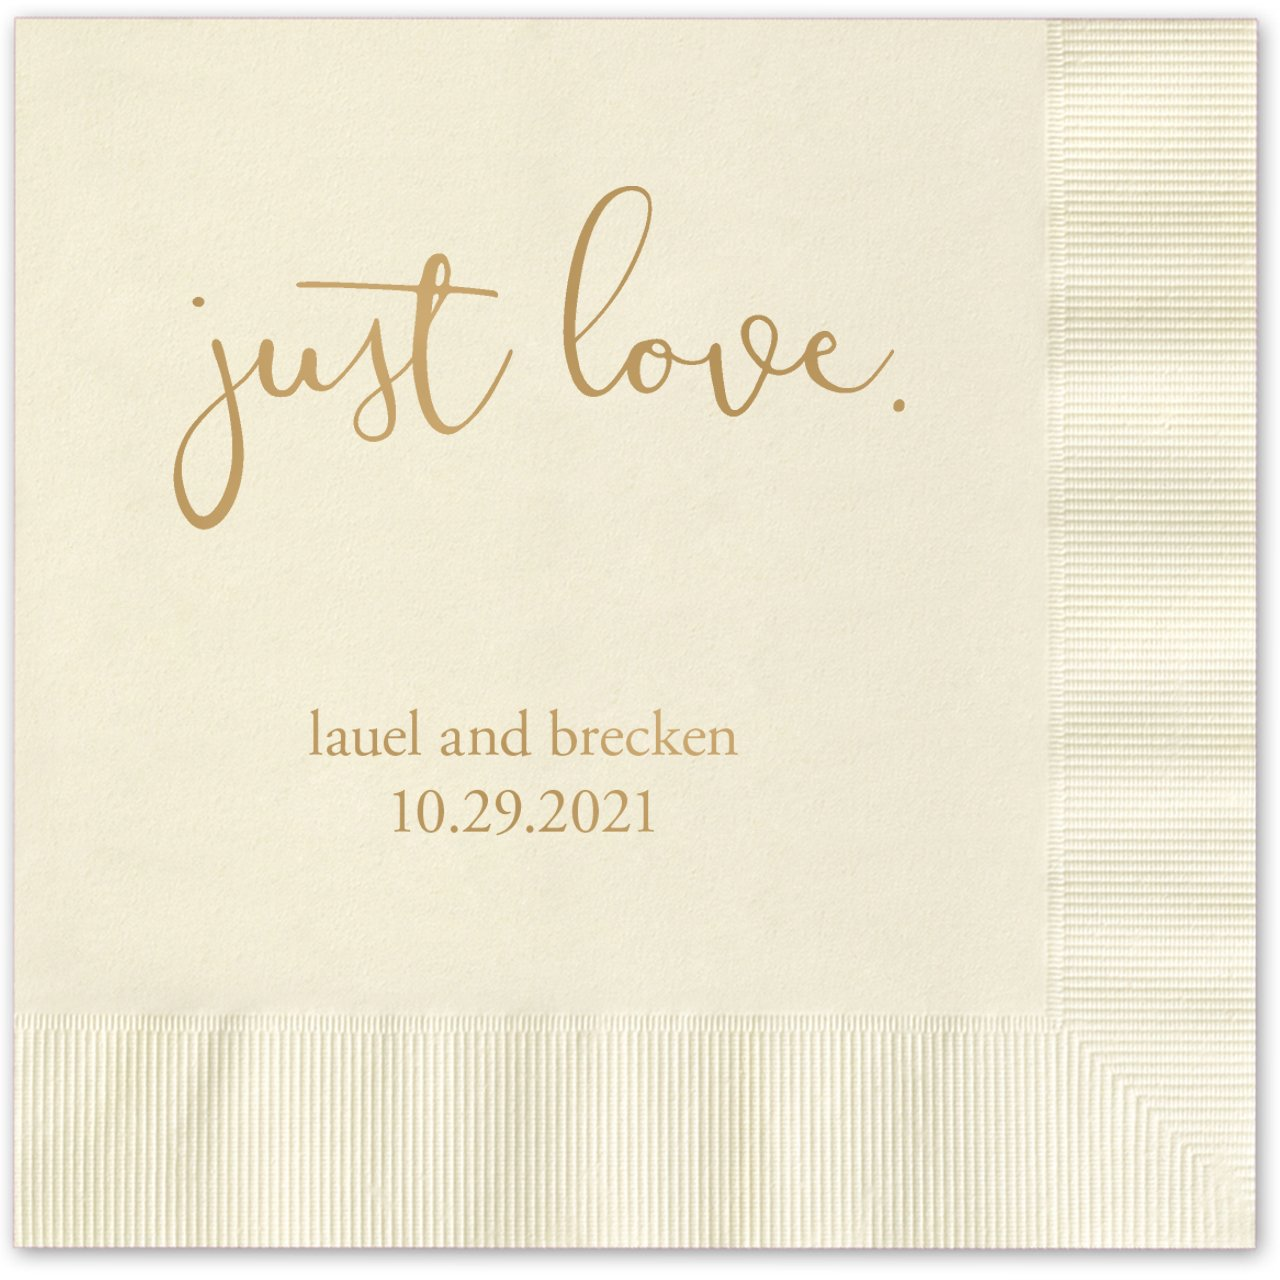 Just Love Personalized Beverage Cocktail Napkins - 100 Custom Printed Ecru Paper Napkins with choice of foil